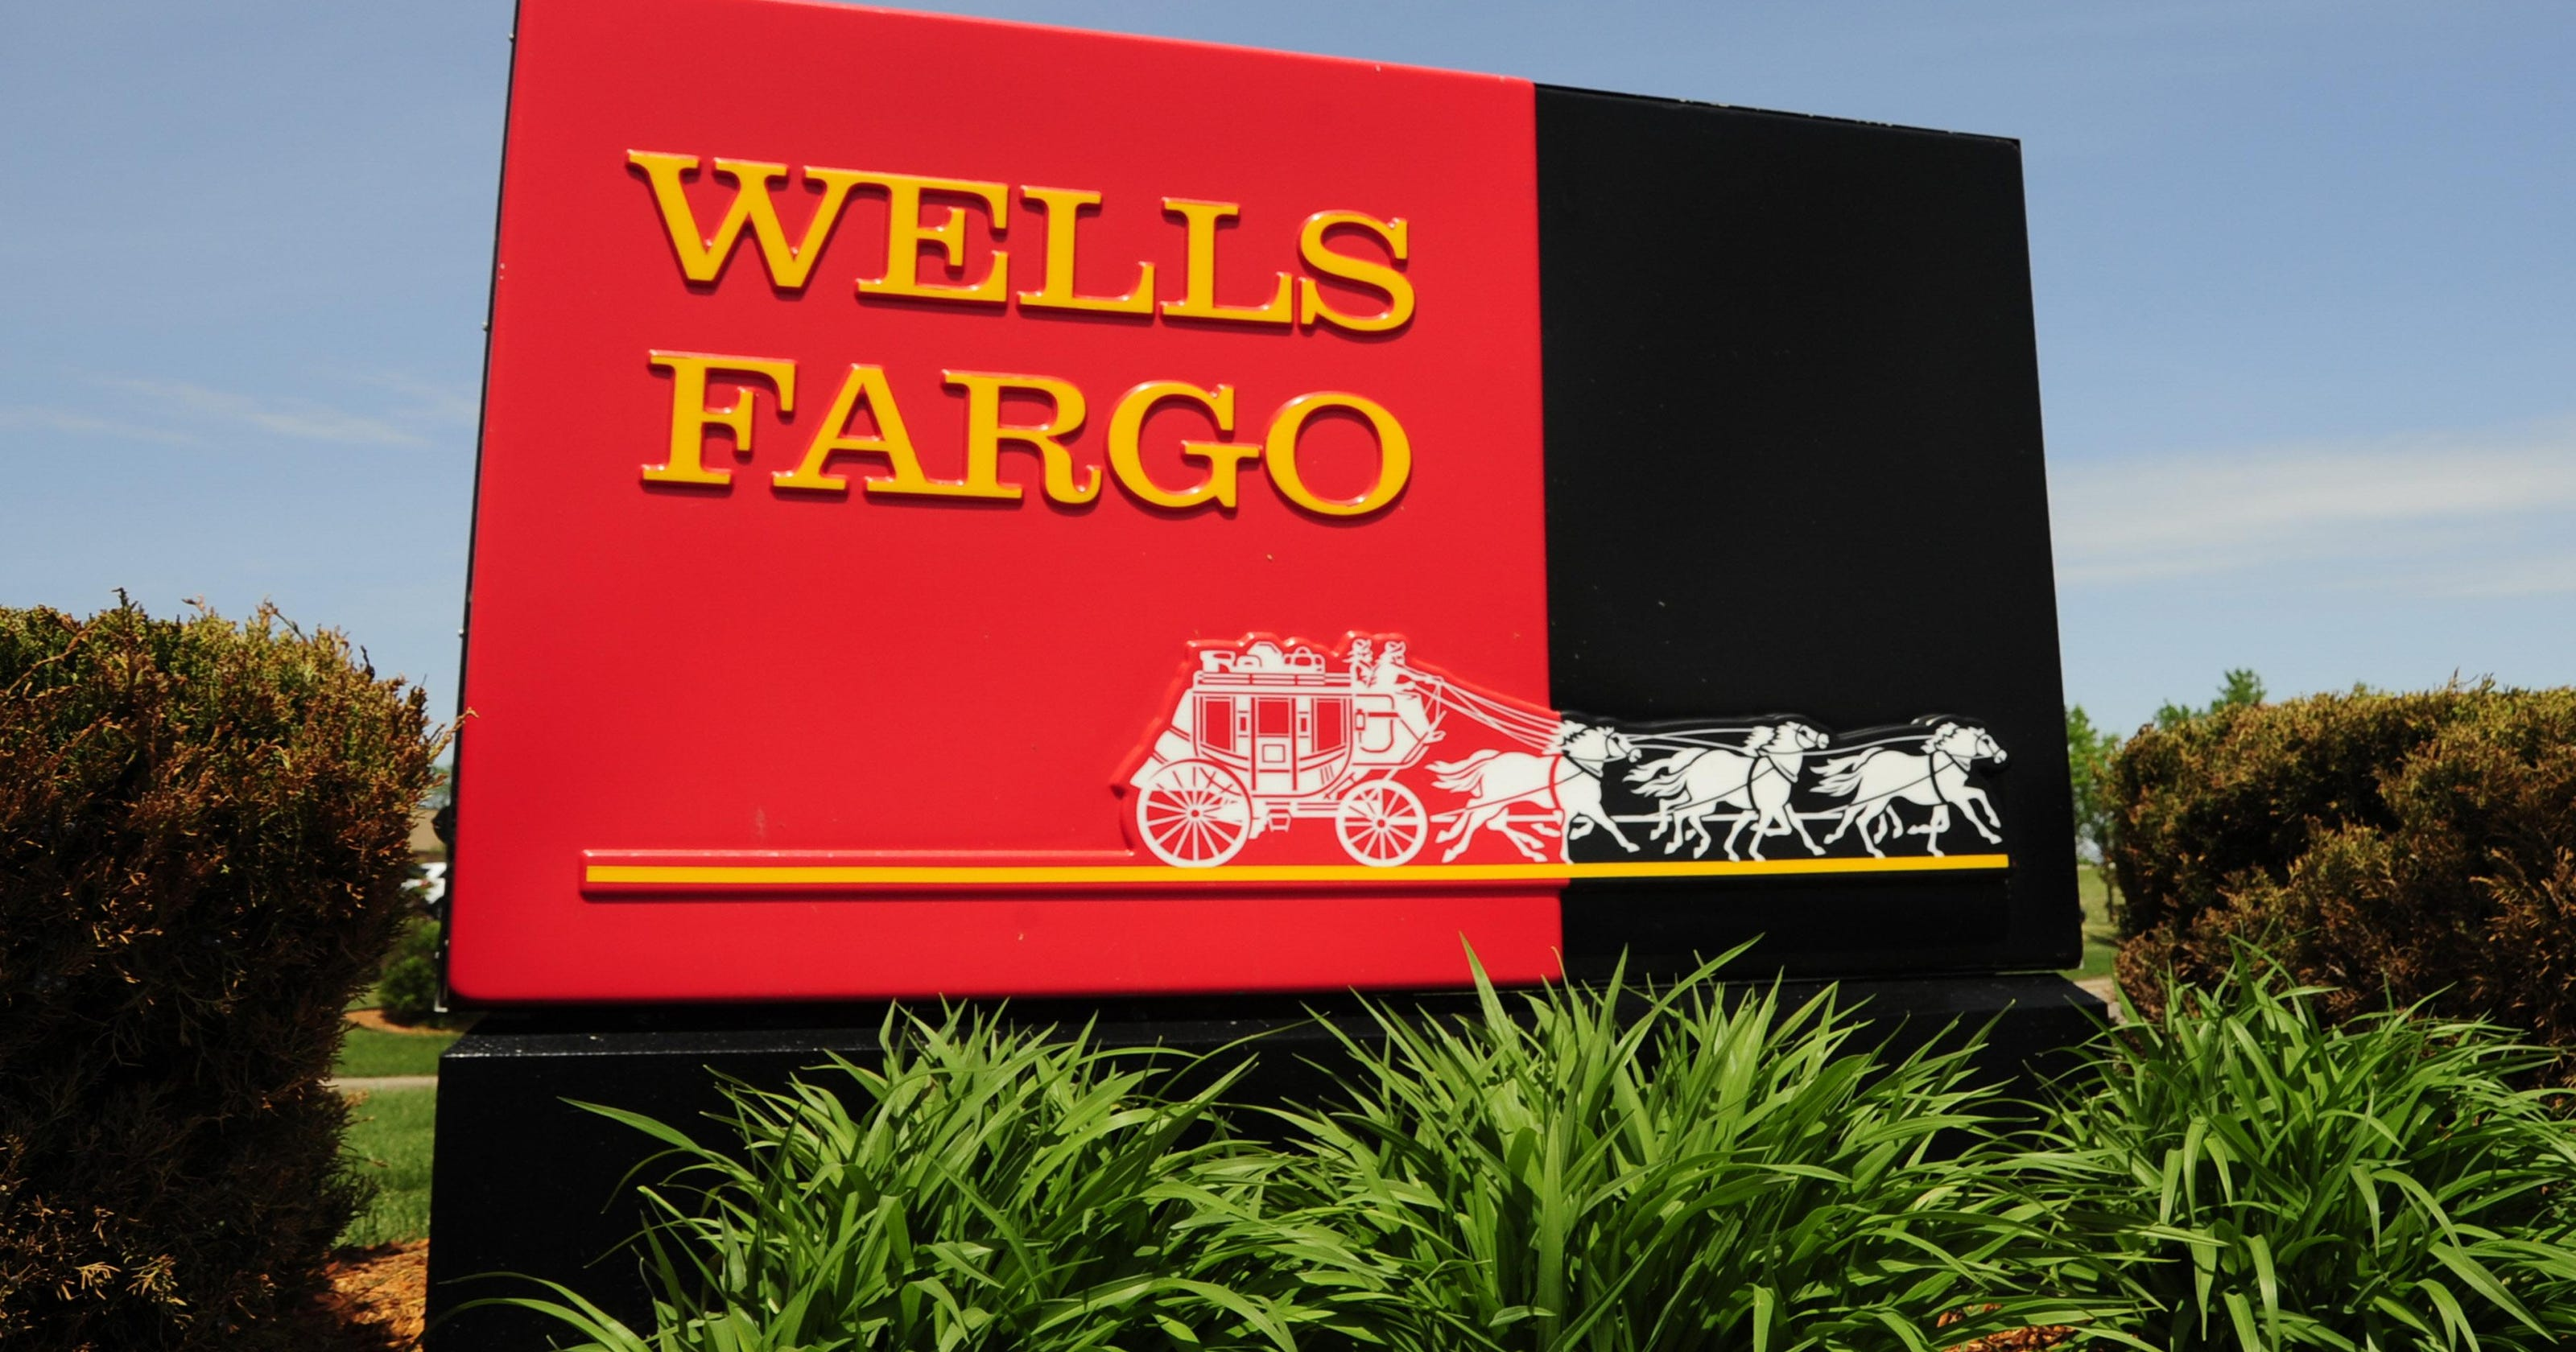 Wells Fargo Charged Fees On Closed Account Wiring Money To